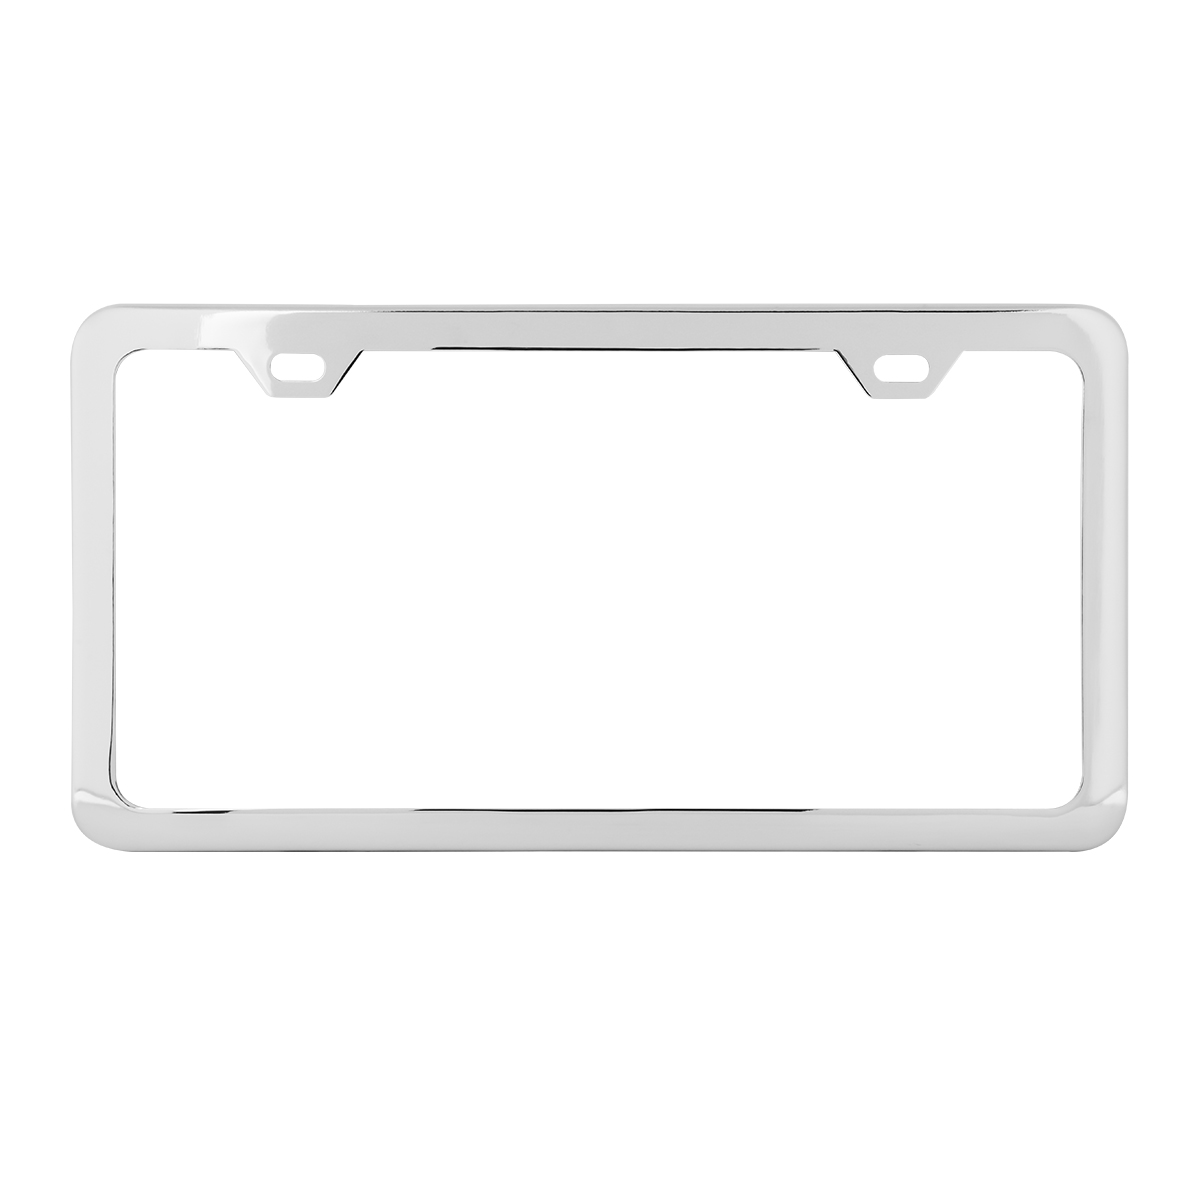 60400 Plain Chrome Plated 2 Hole License Plate Frame